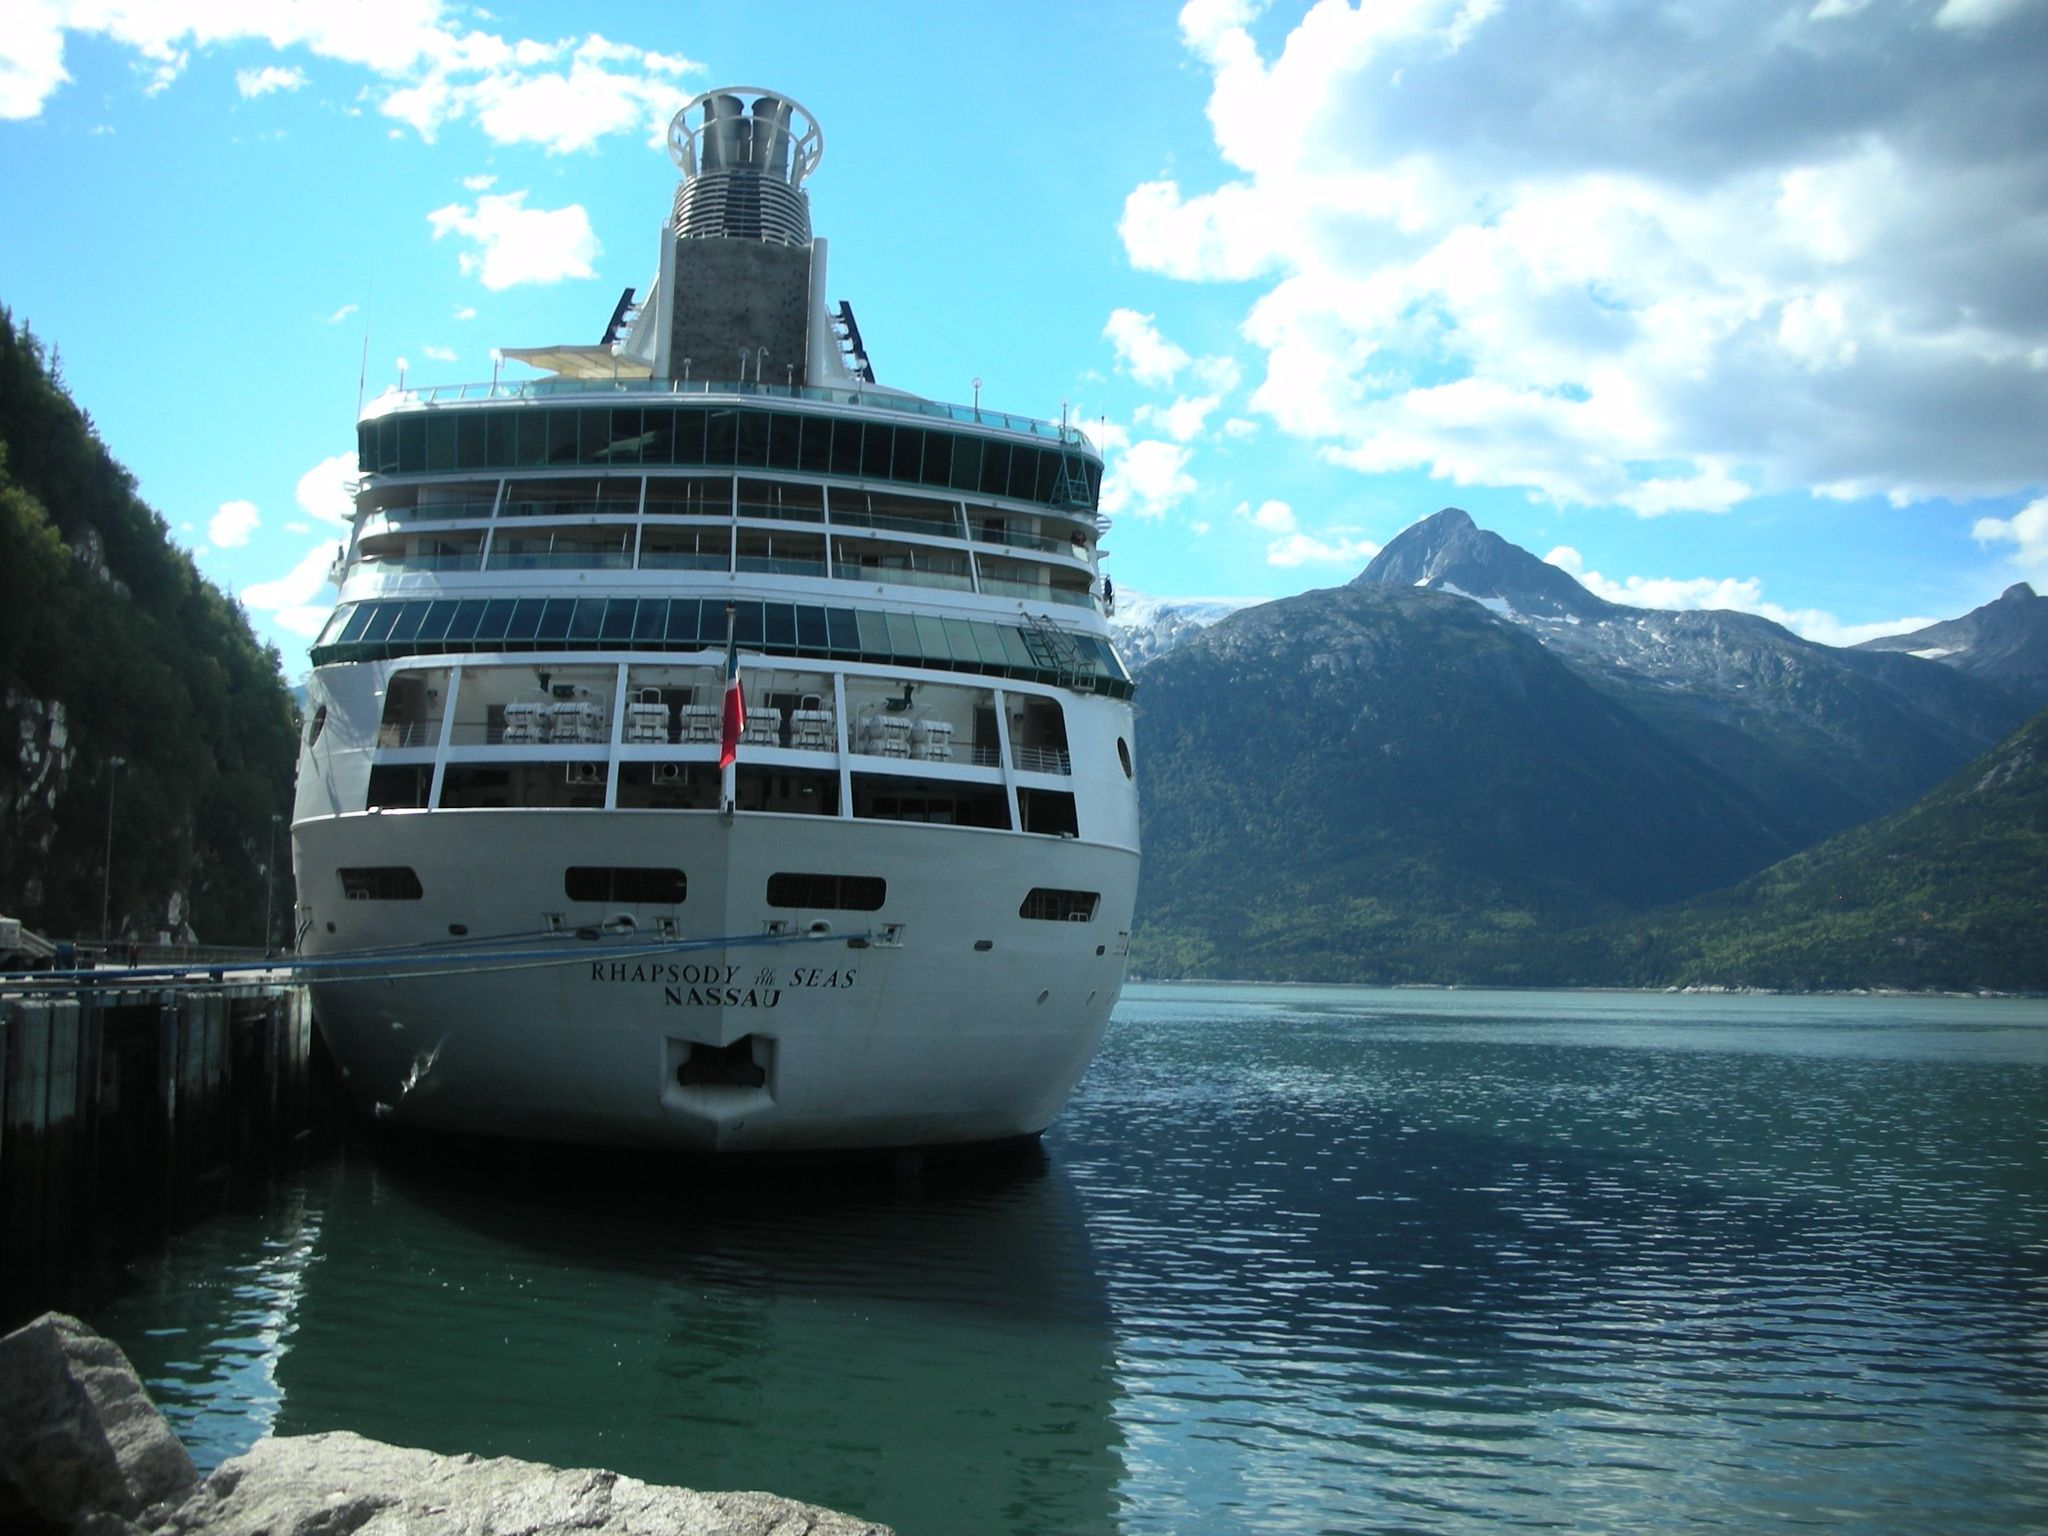 Our Ship Rhapsody Of The Seas By Royal Caribbean For Our Alaska Inside Passage Cruise Loved This Entire Trip Kapal Pesiar Pesiar Kapal